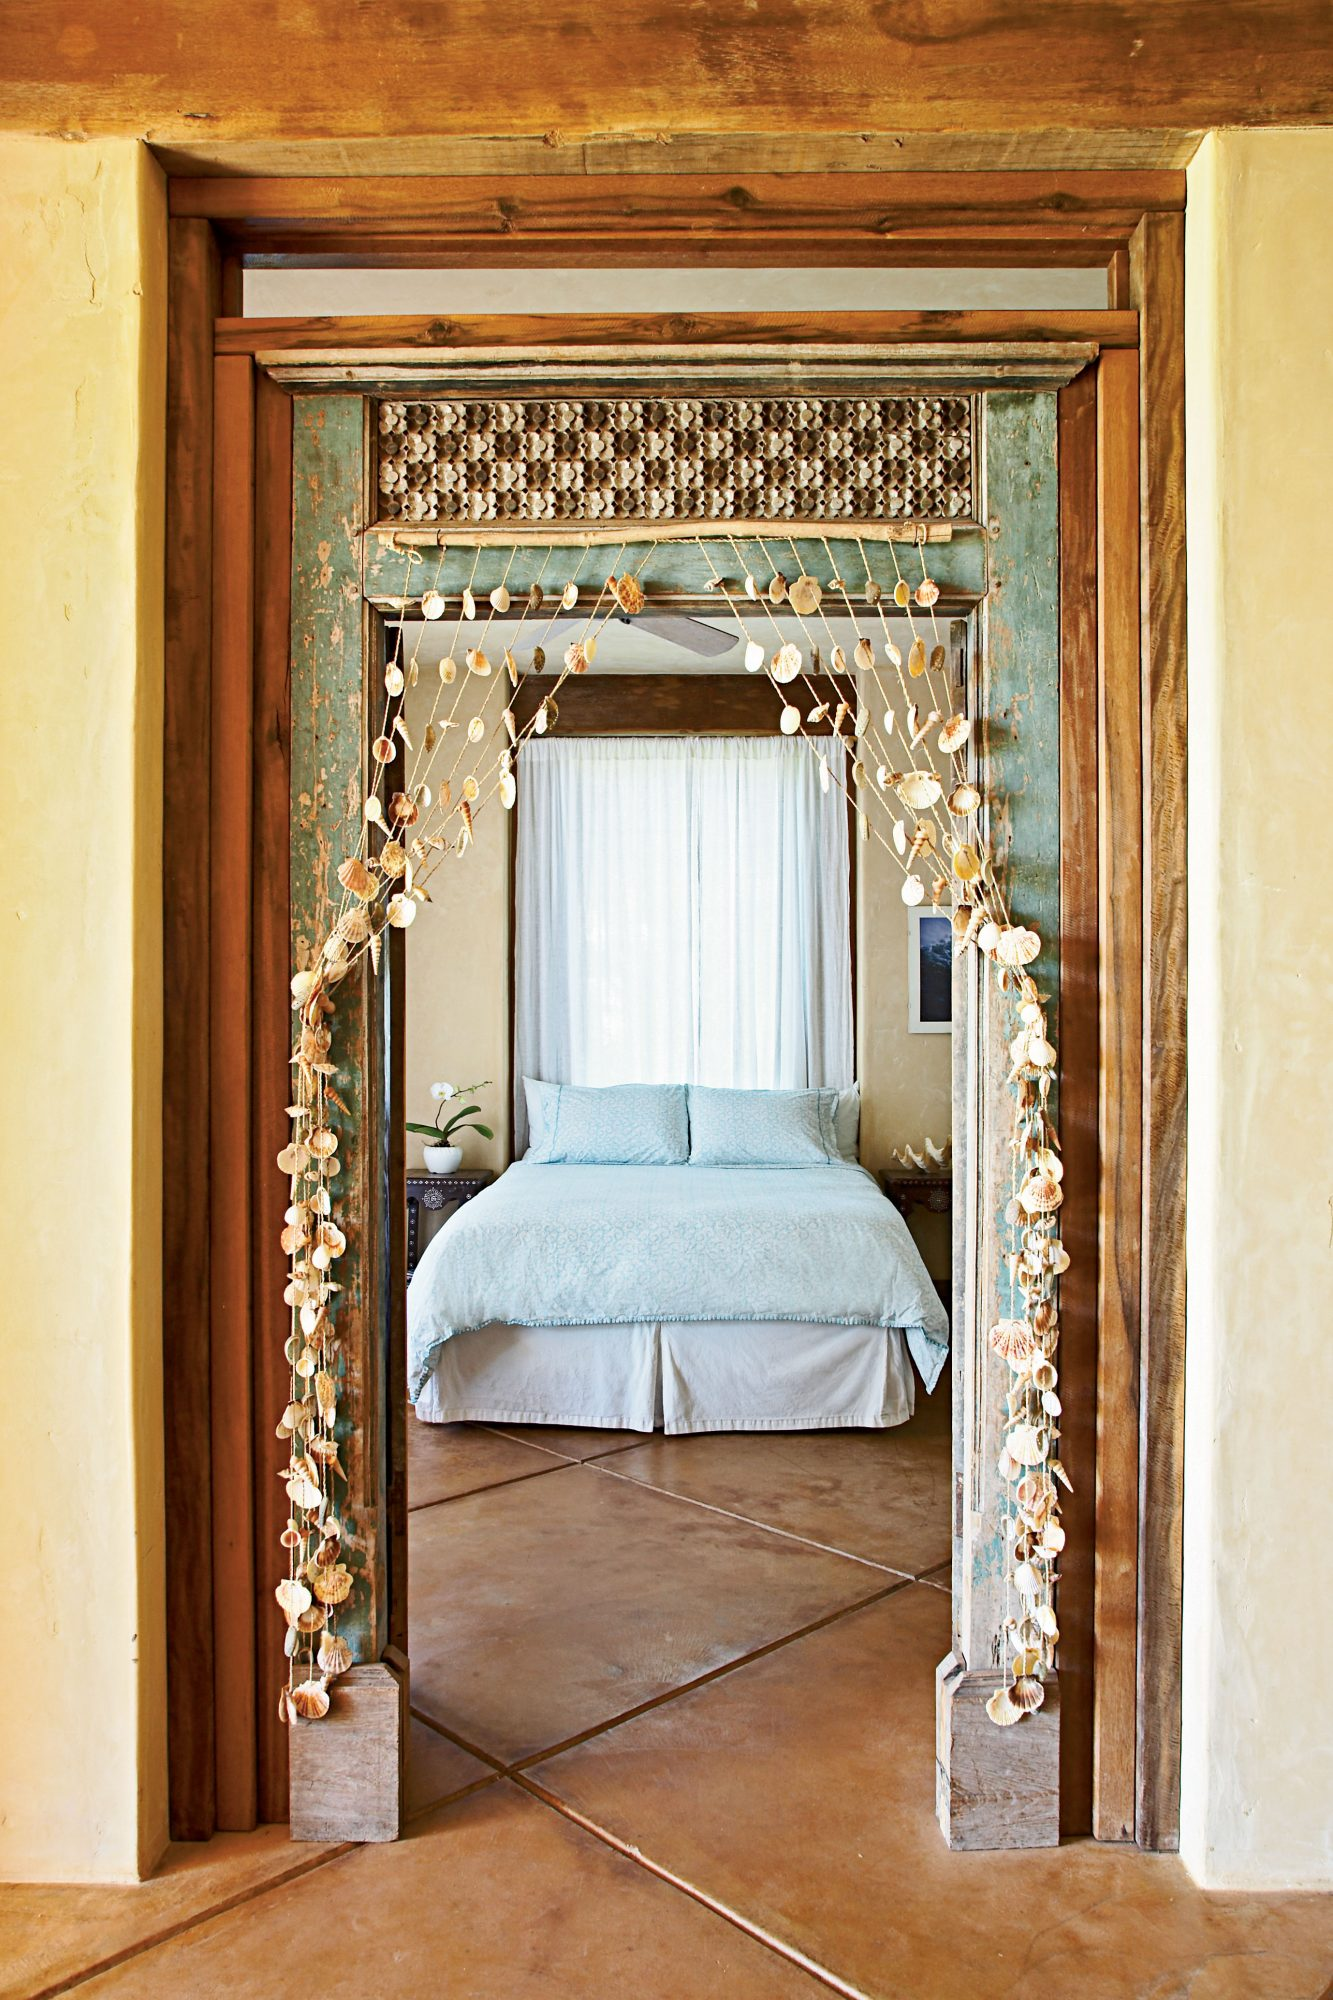 The seashell curtain hanging over the entry to this bedroom is a fun reminder that the Pacific Ocean is just outside.